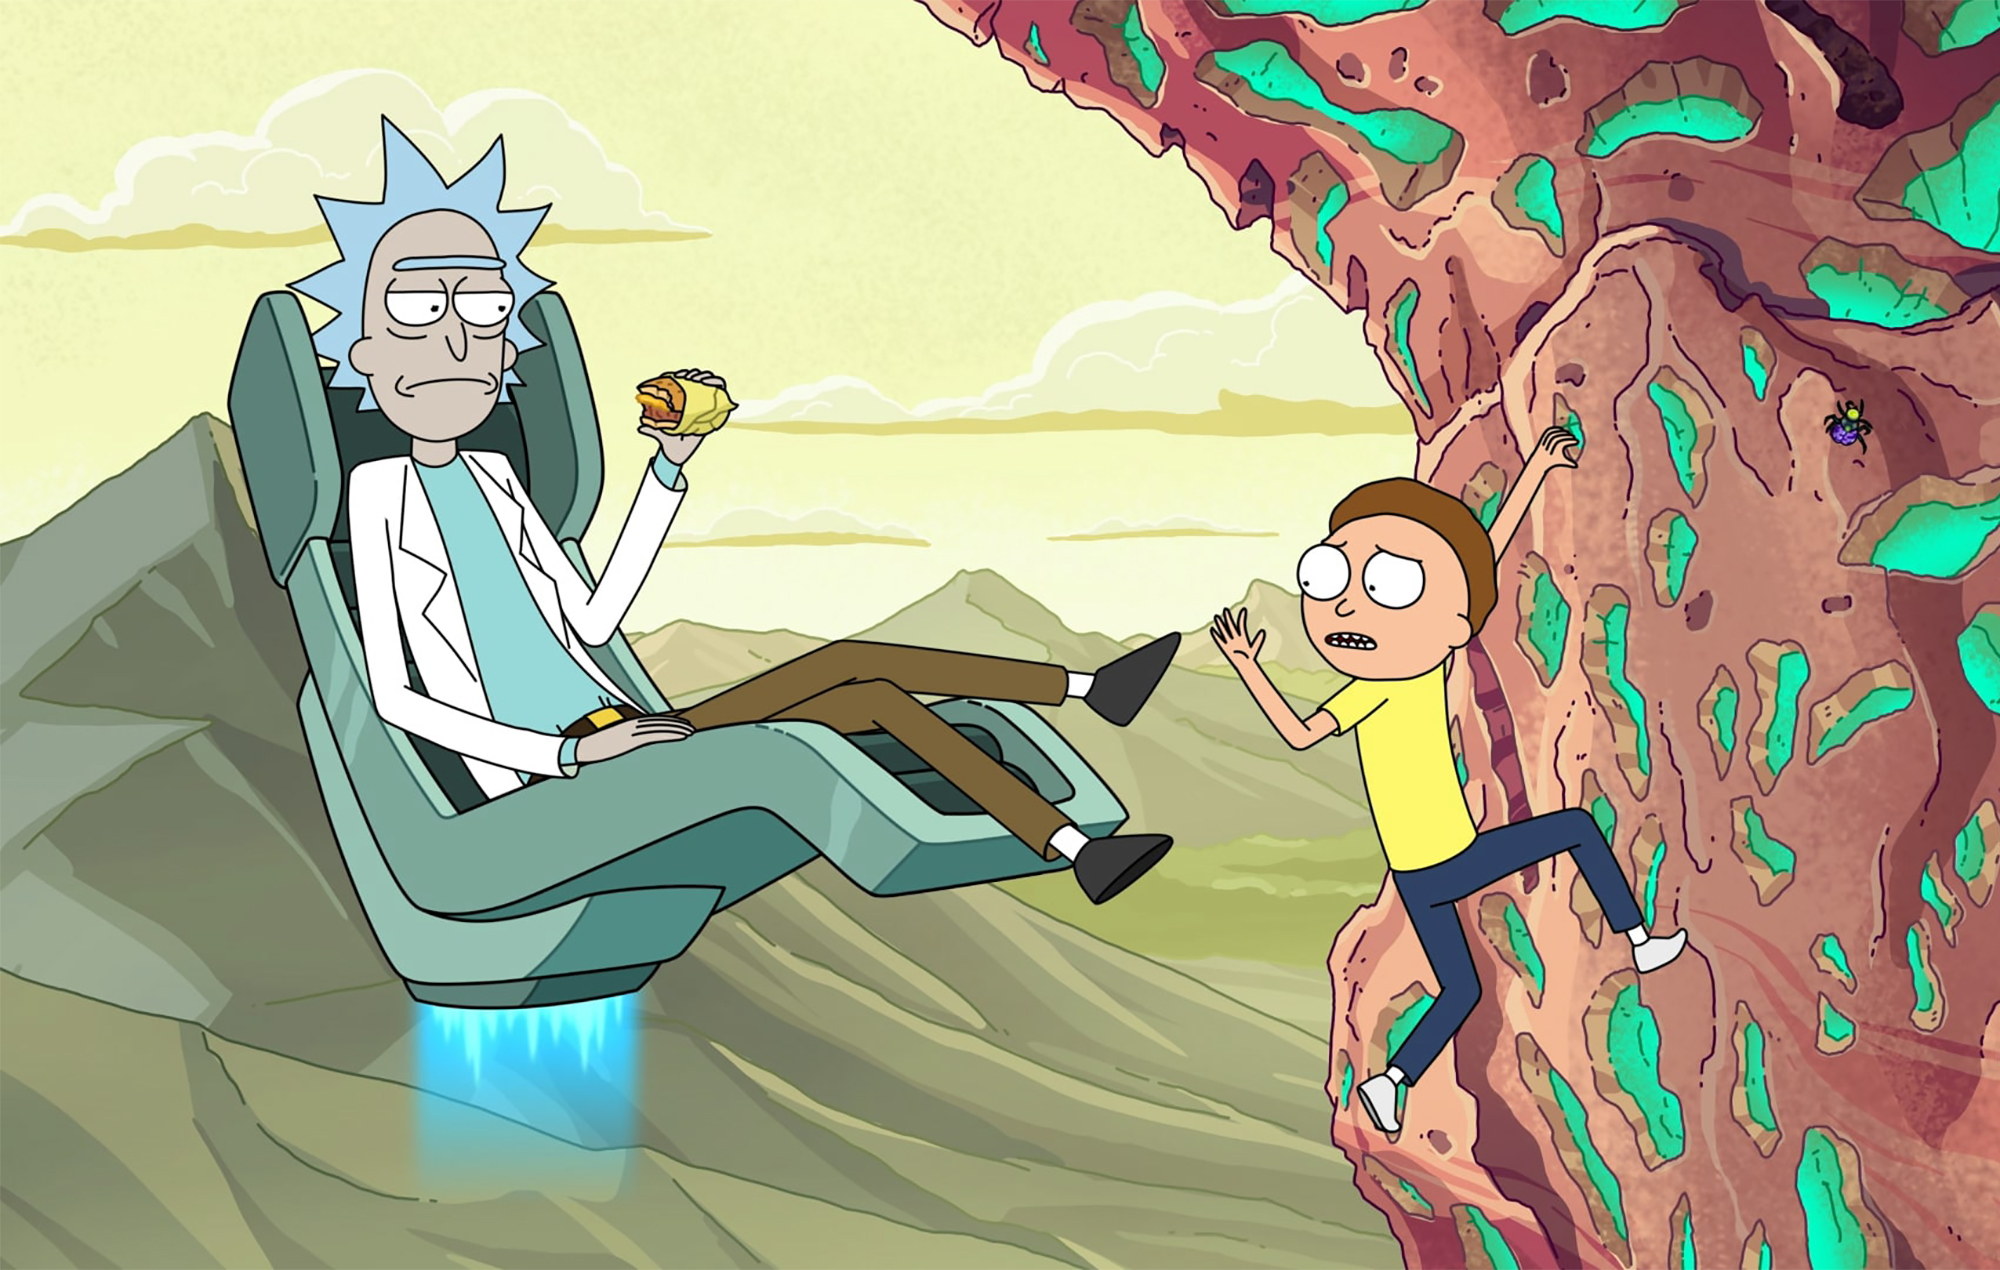 Best Cartoon & Anime Shows Like Rick and Morty To Watch